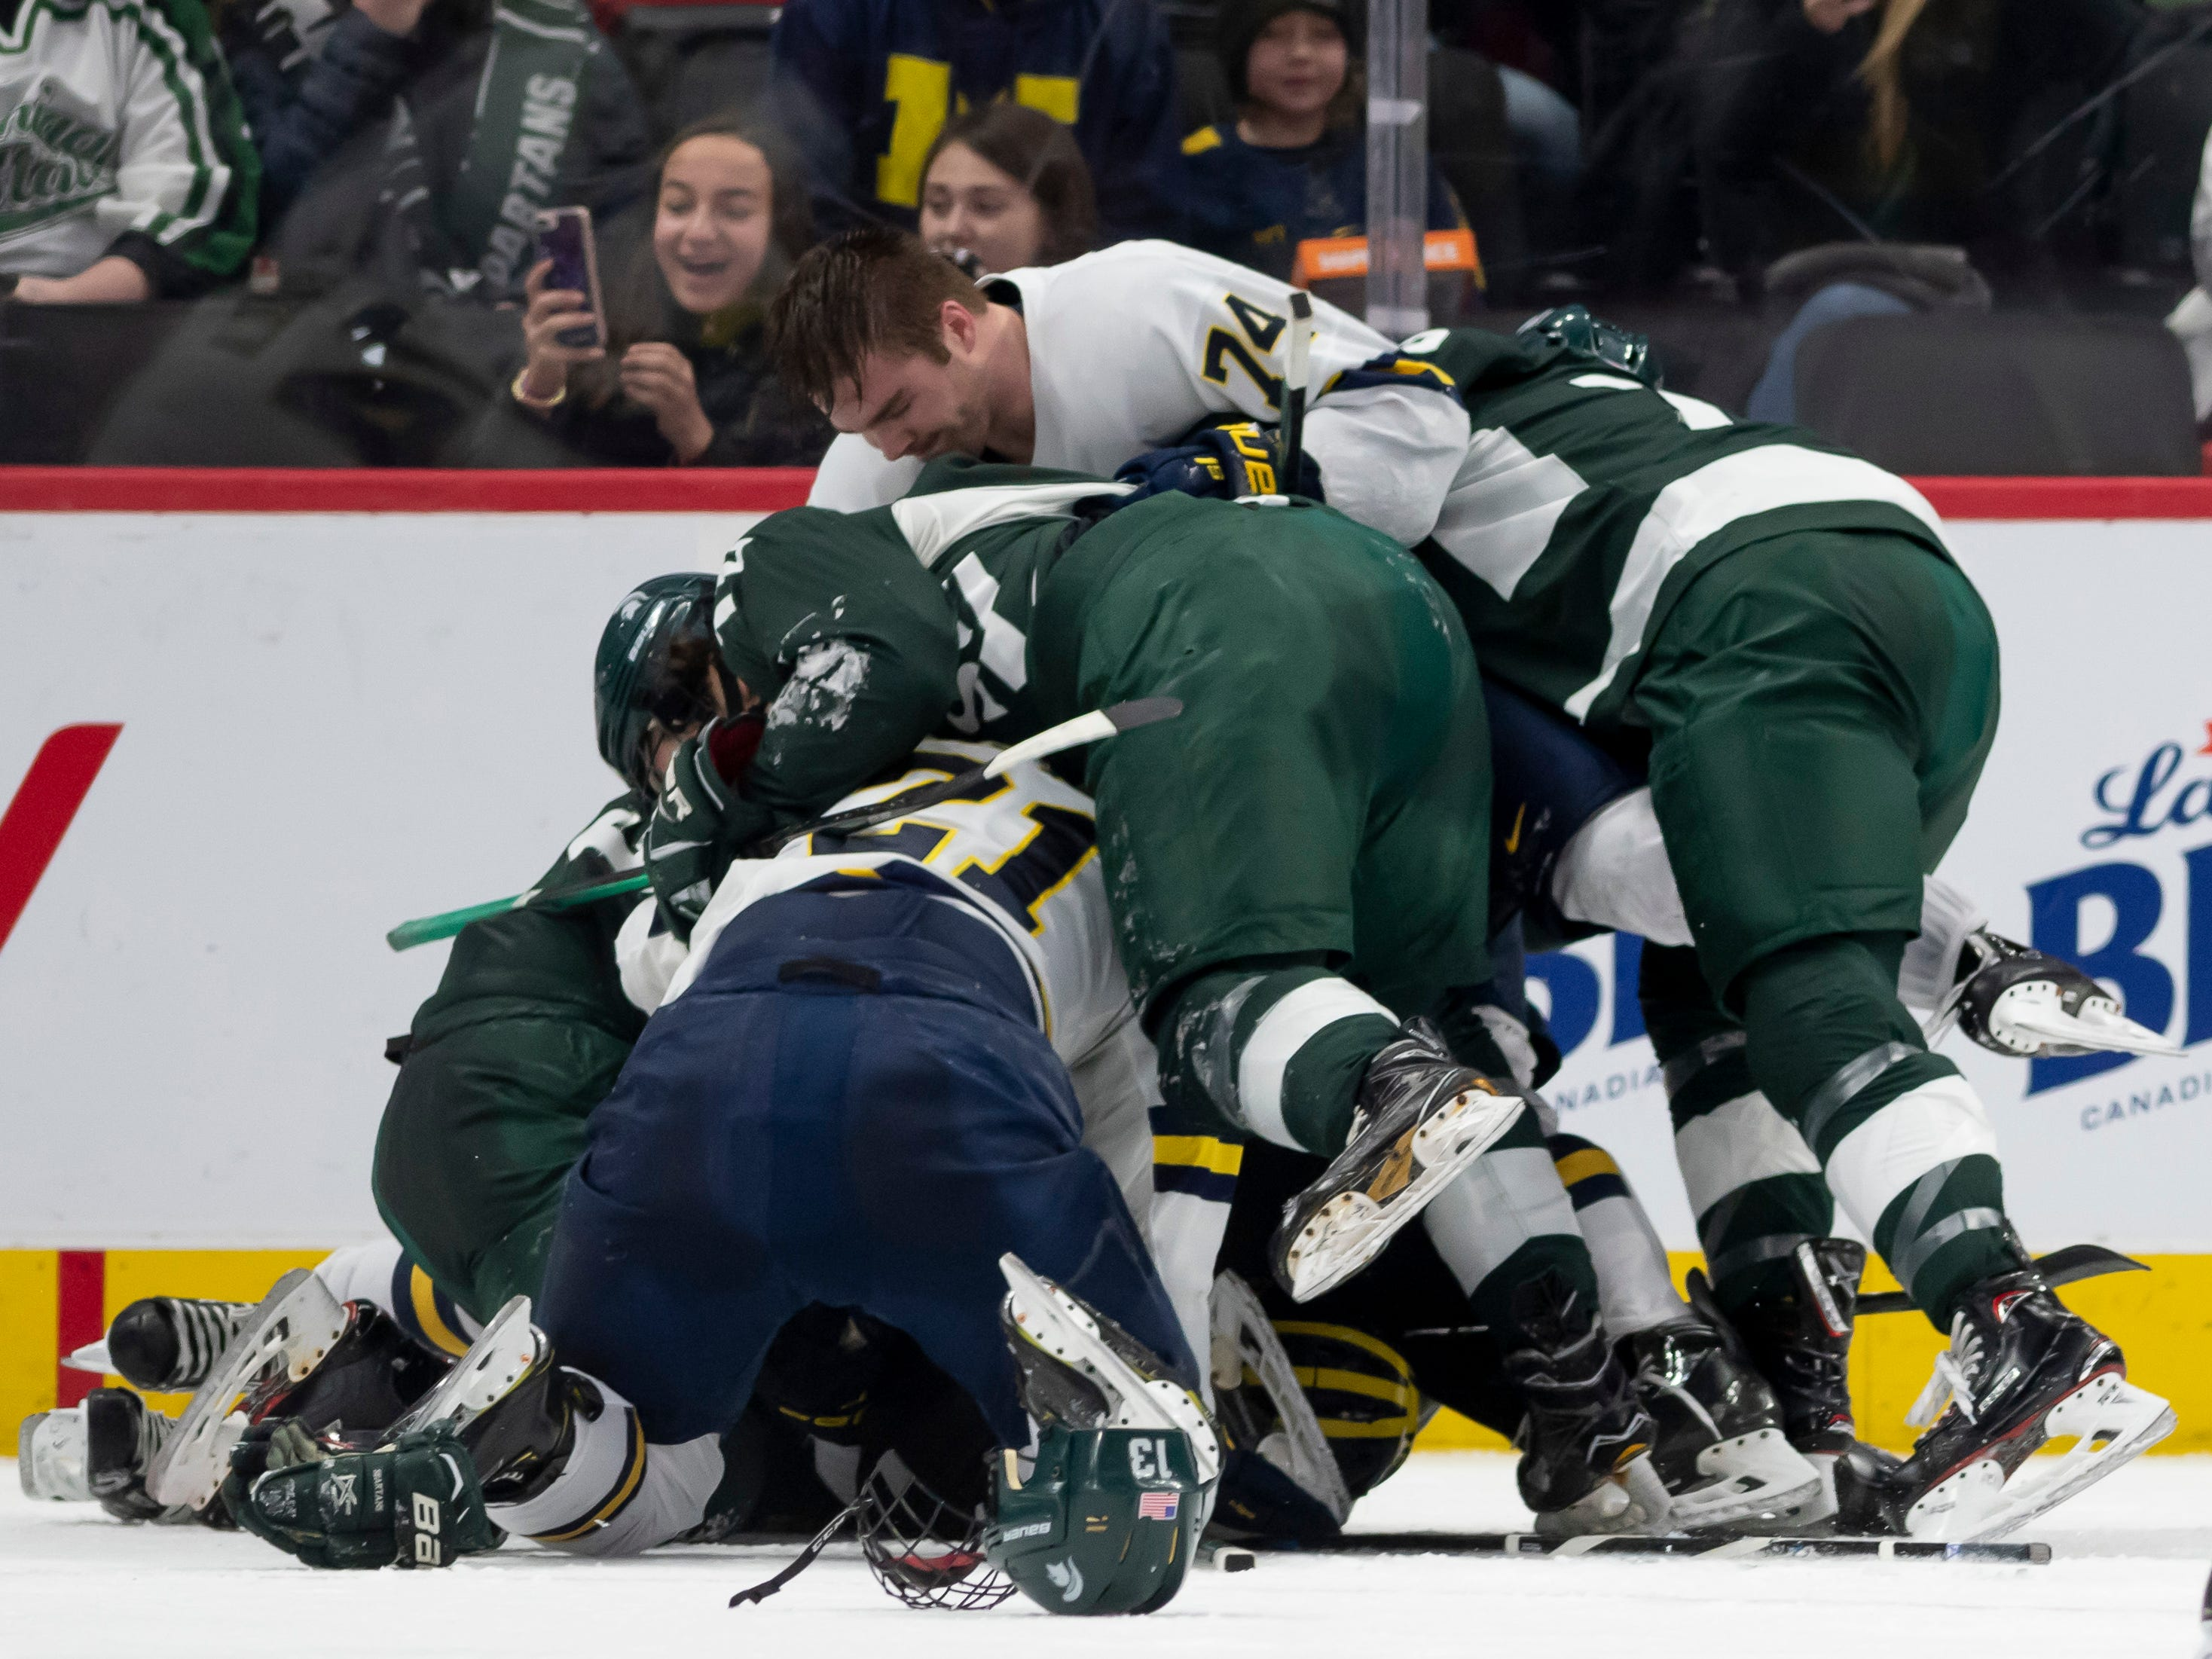 The two teams pile on top of each other during a fight in the first period.  Both teams were given multiple penalties.